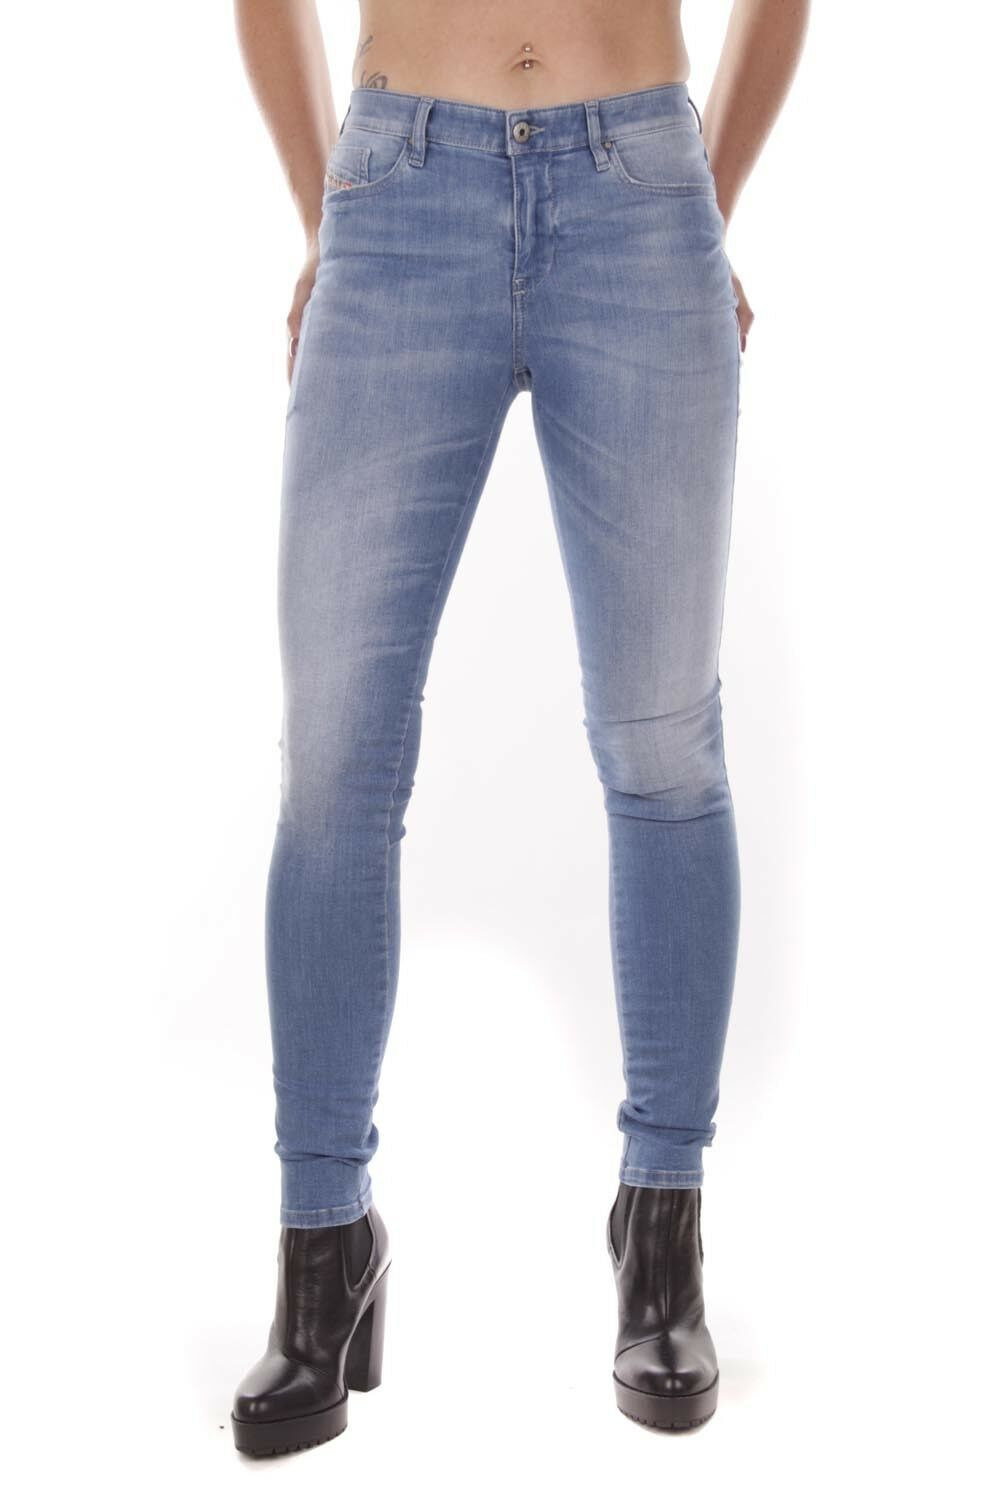 DIESEL SKINZEE 0839p 0839p 0839p JEANS donna pantaloni skinny fbe5bb